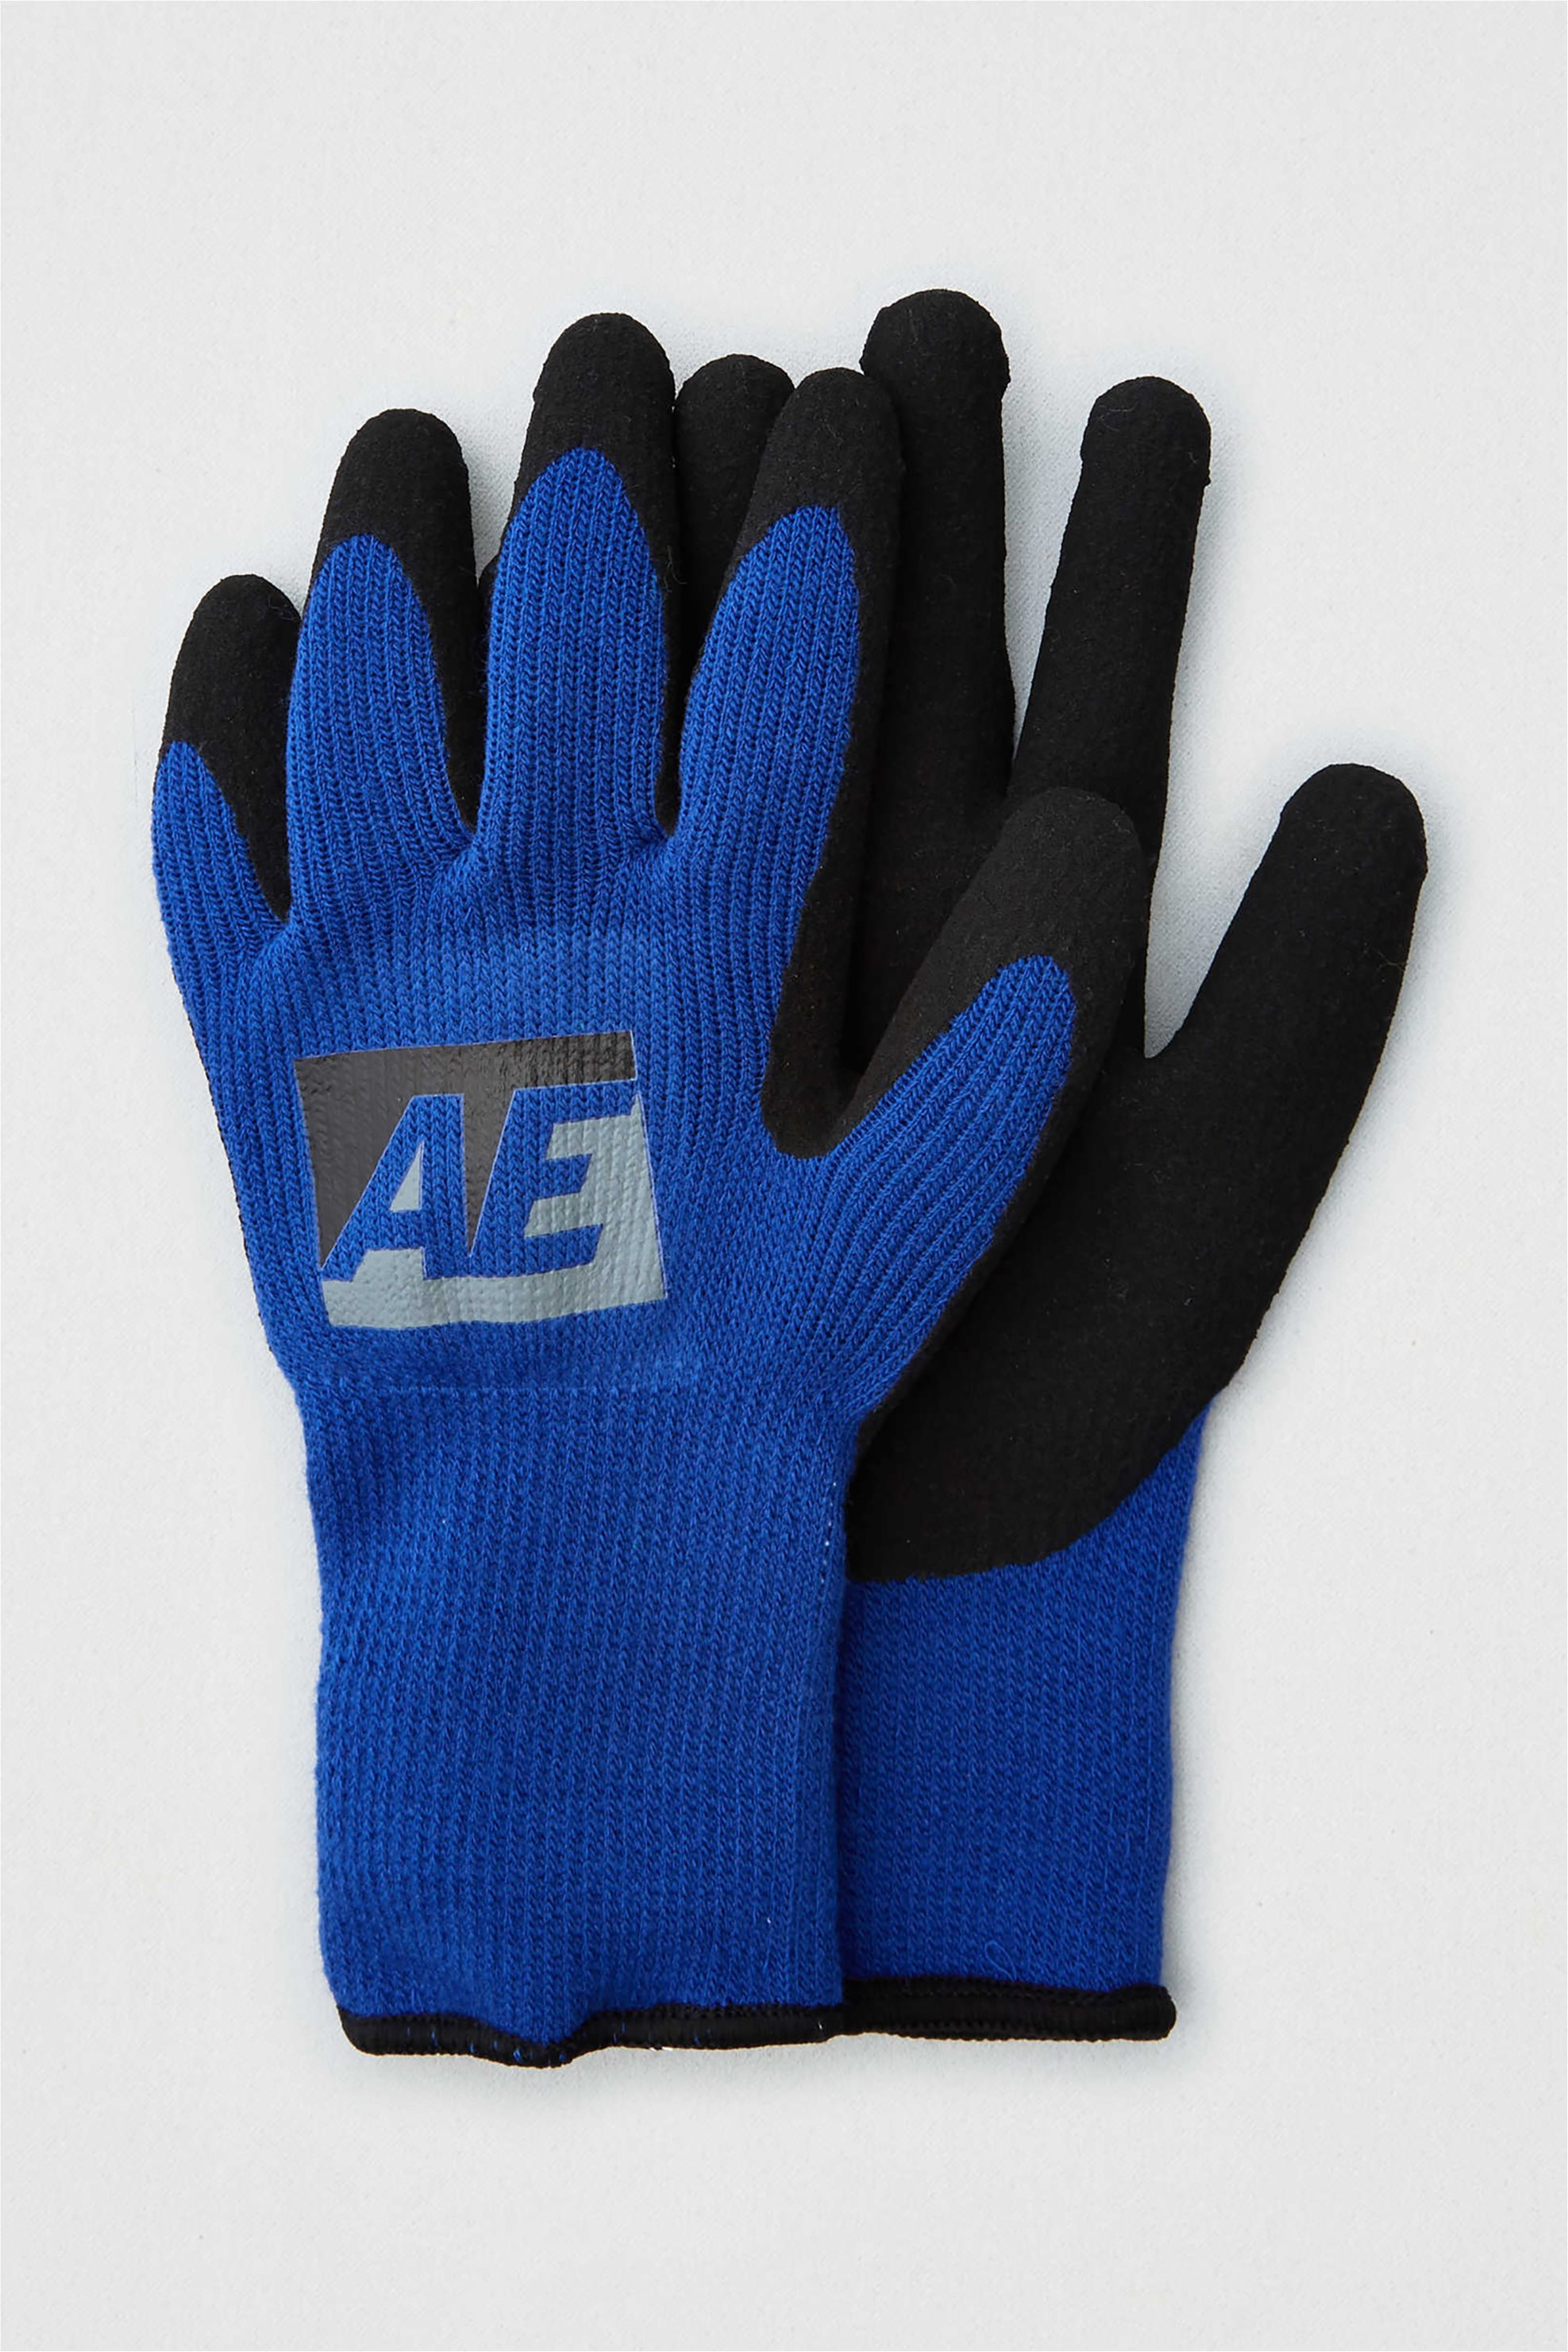 AEO Knitted Gloves - 0226-6363-400 - Μπλε